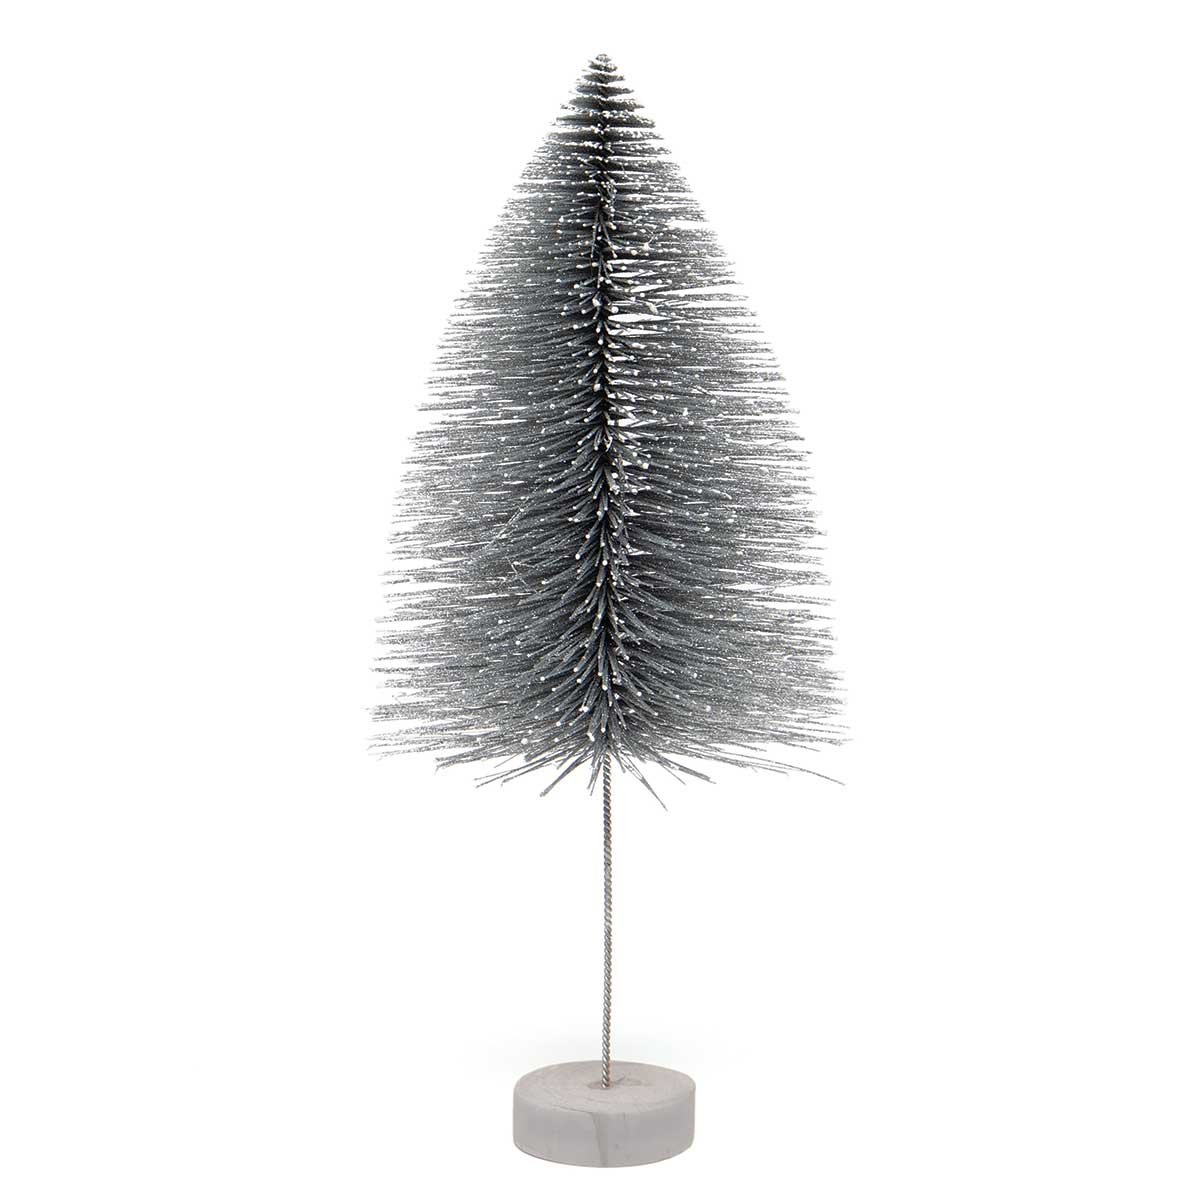 BRISTLE MANTLE TREE SILVER WITH SNOWY TIPS, GLITTER AND WOOD